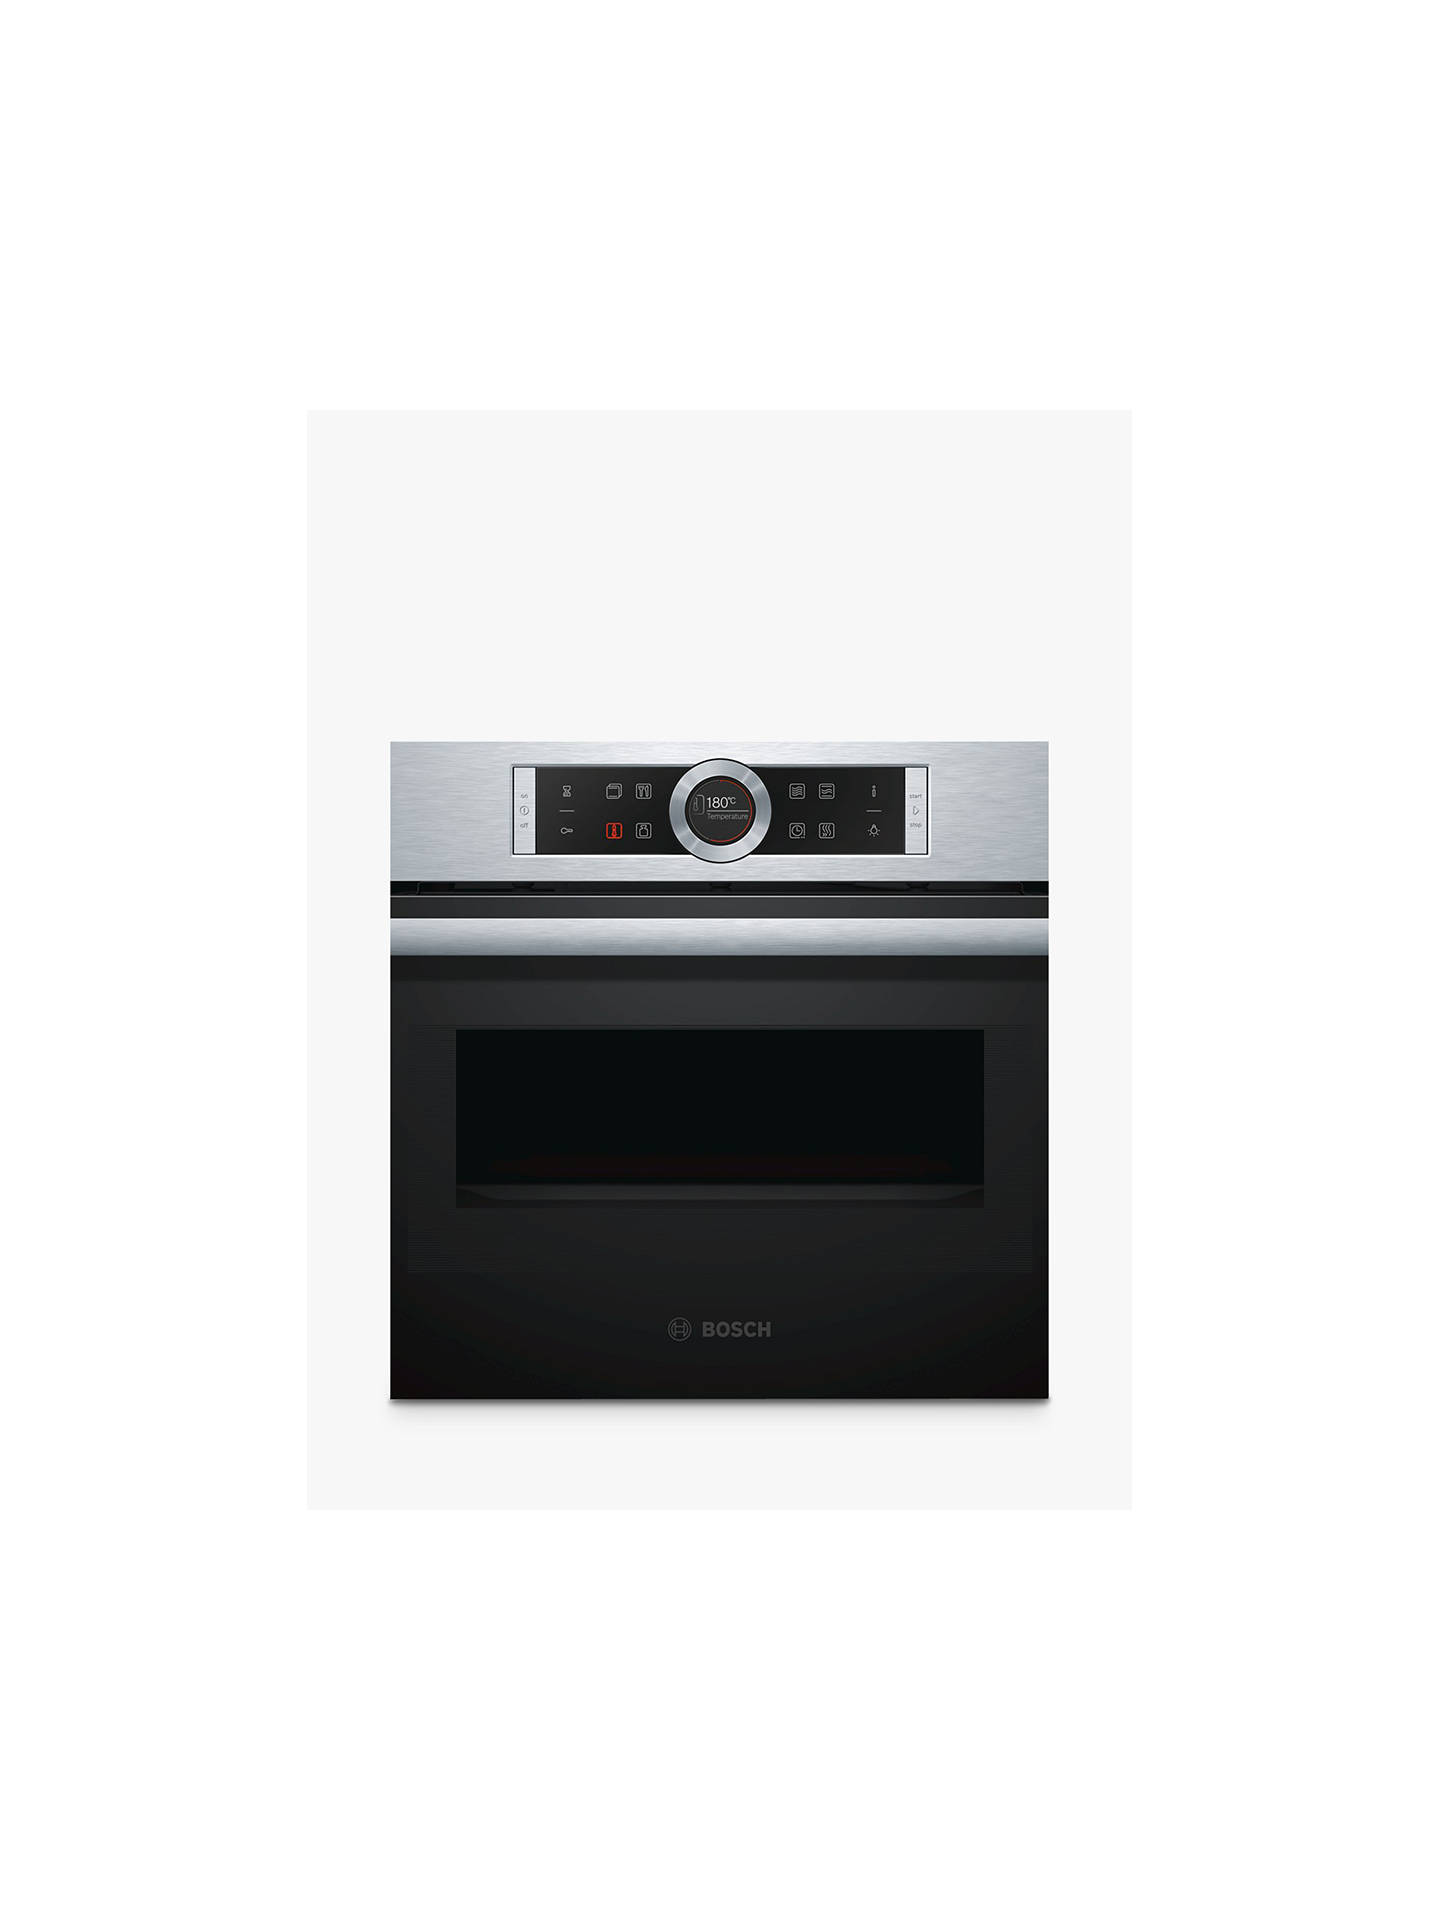 bosch cmg633bs1b compact built in combination microwave oven stainless steel at john lewis. Black Bedroom Furniture Sets. Home Design Ideas